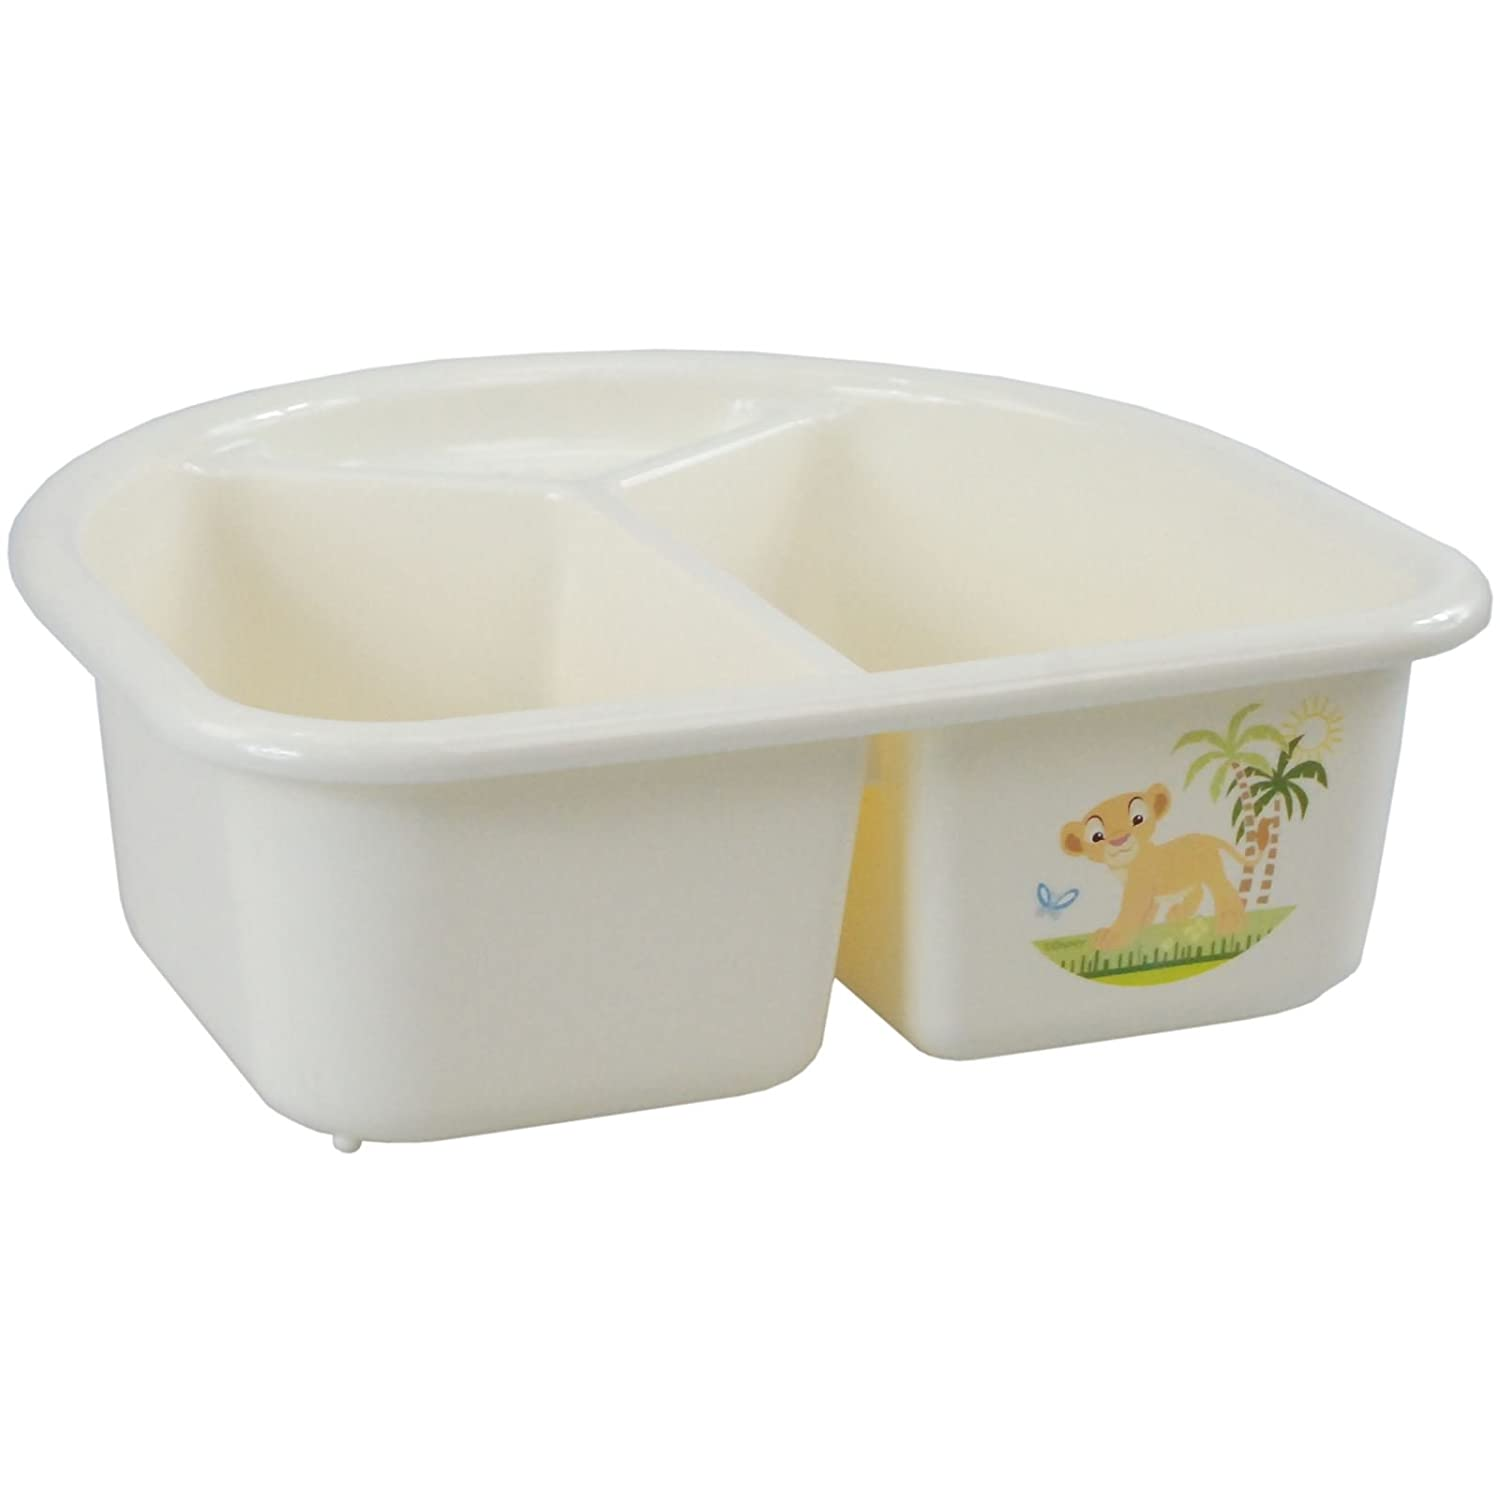 CrazyGadget® Rotho Top & Tail Wash Bowl Baby Design Nursery Simba The Lion 2 Compartments Soap Holder Cream Made in Germany